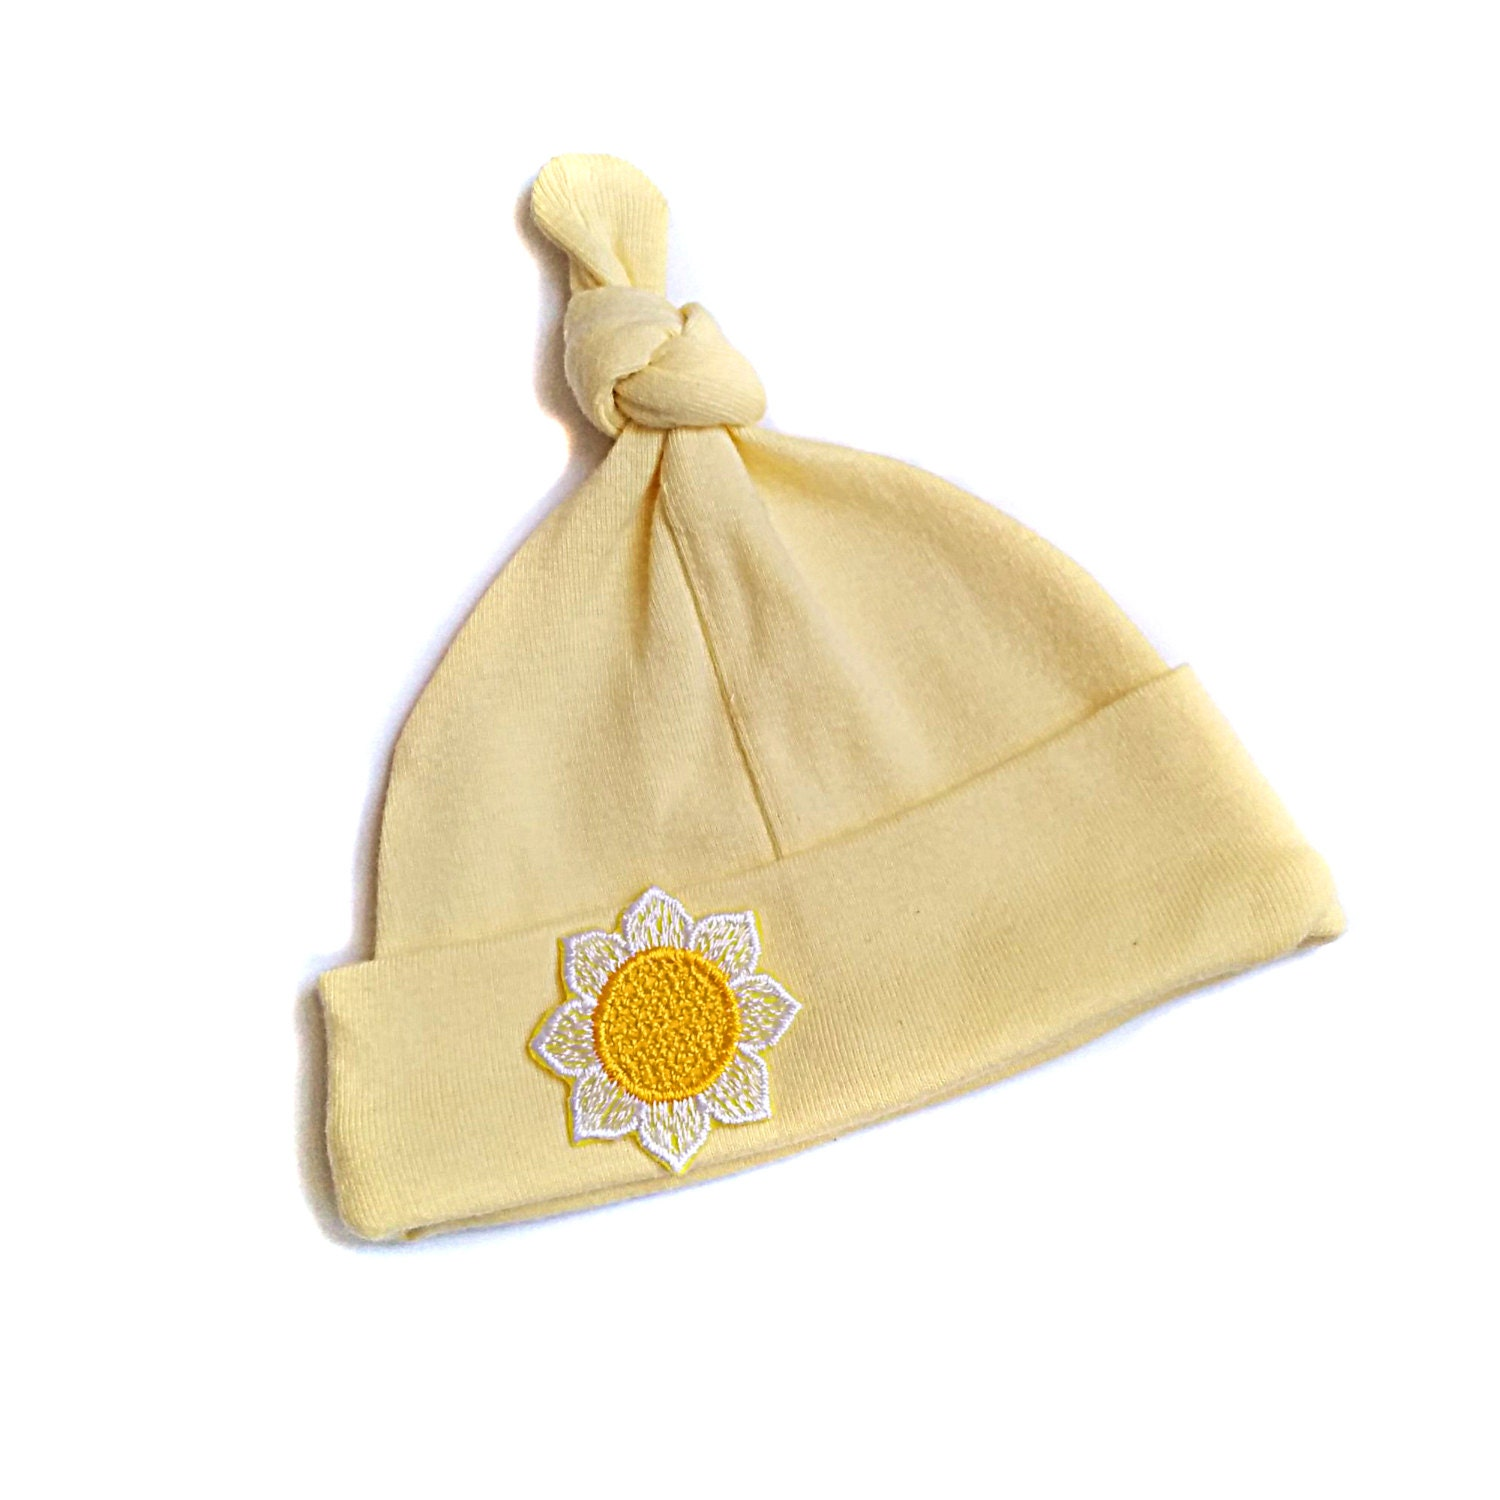 Baby Knit Organic Cotton Hat Organic Jersey Knit Fabric Hat